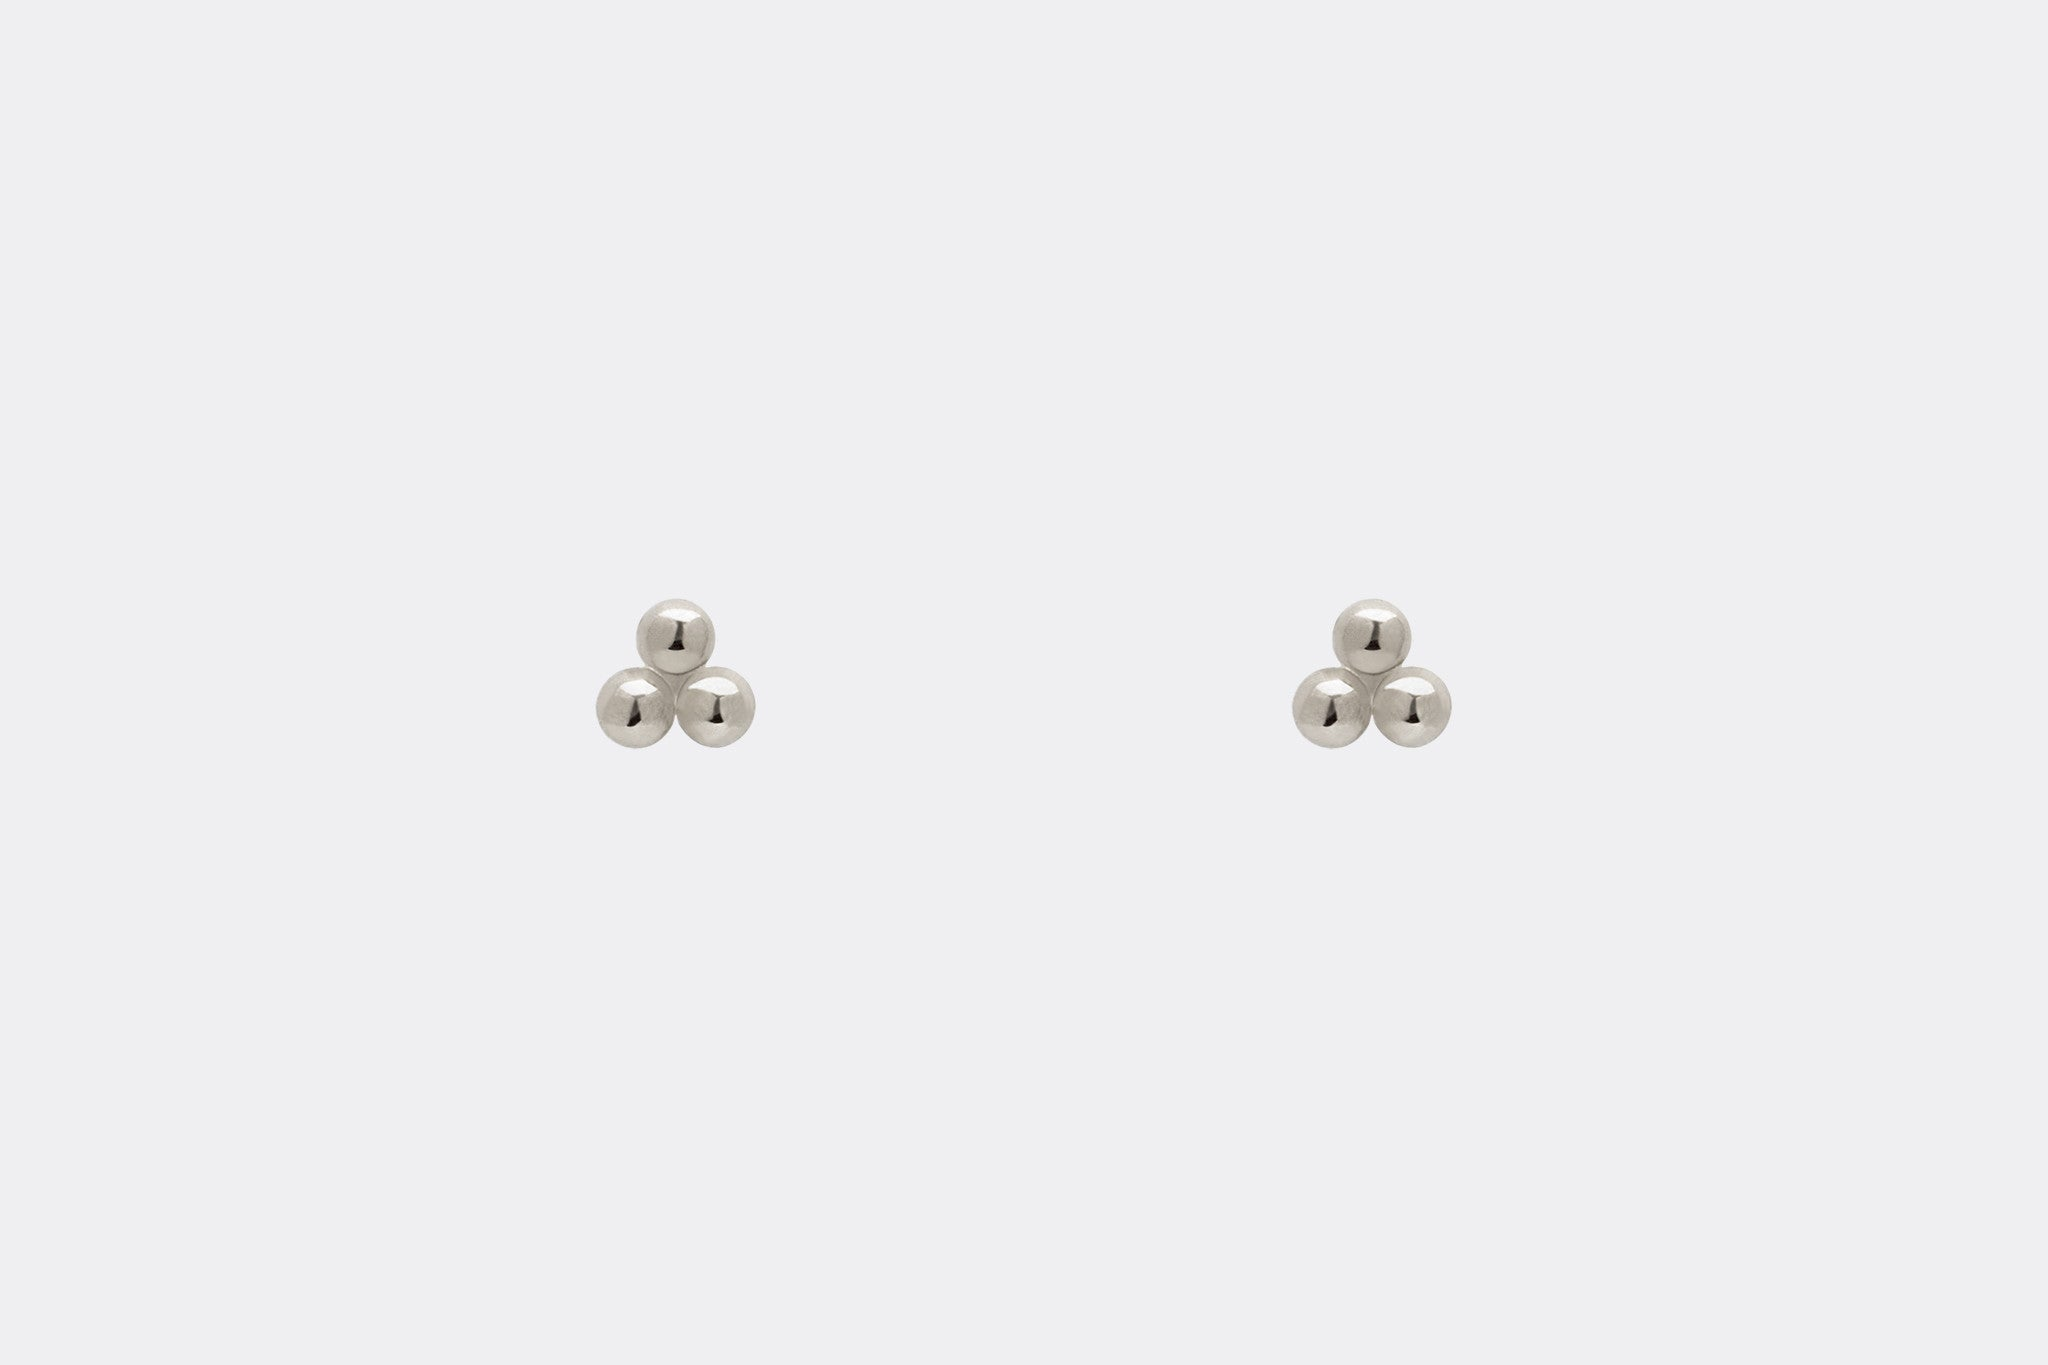 Tiny Clover White Gold Three Dot Stud Earrings E2243